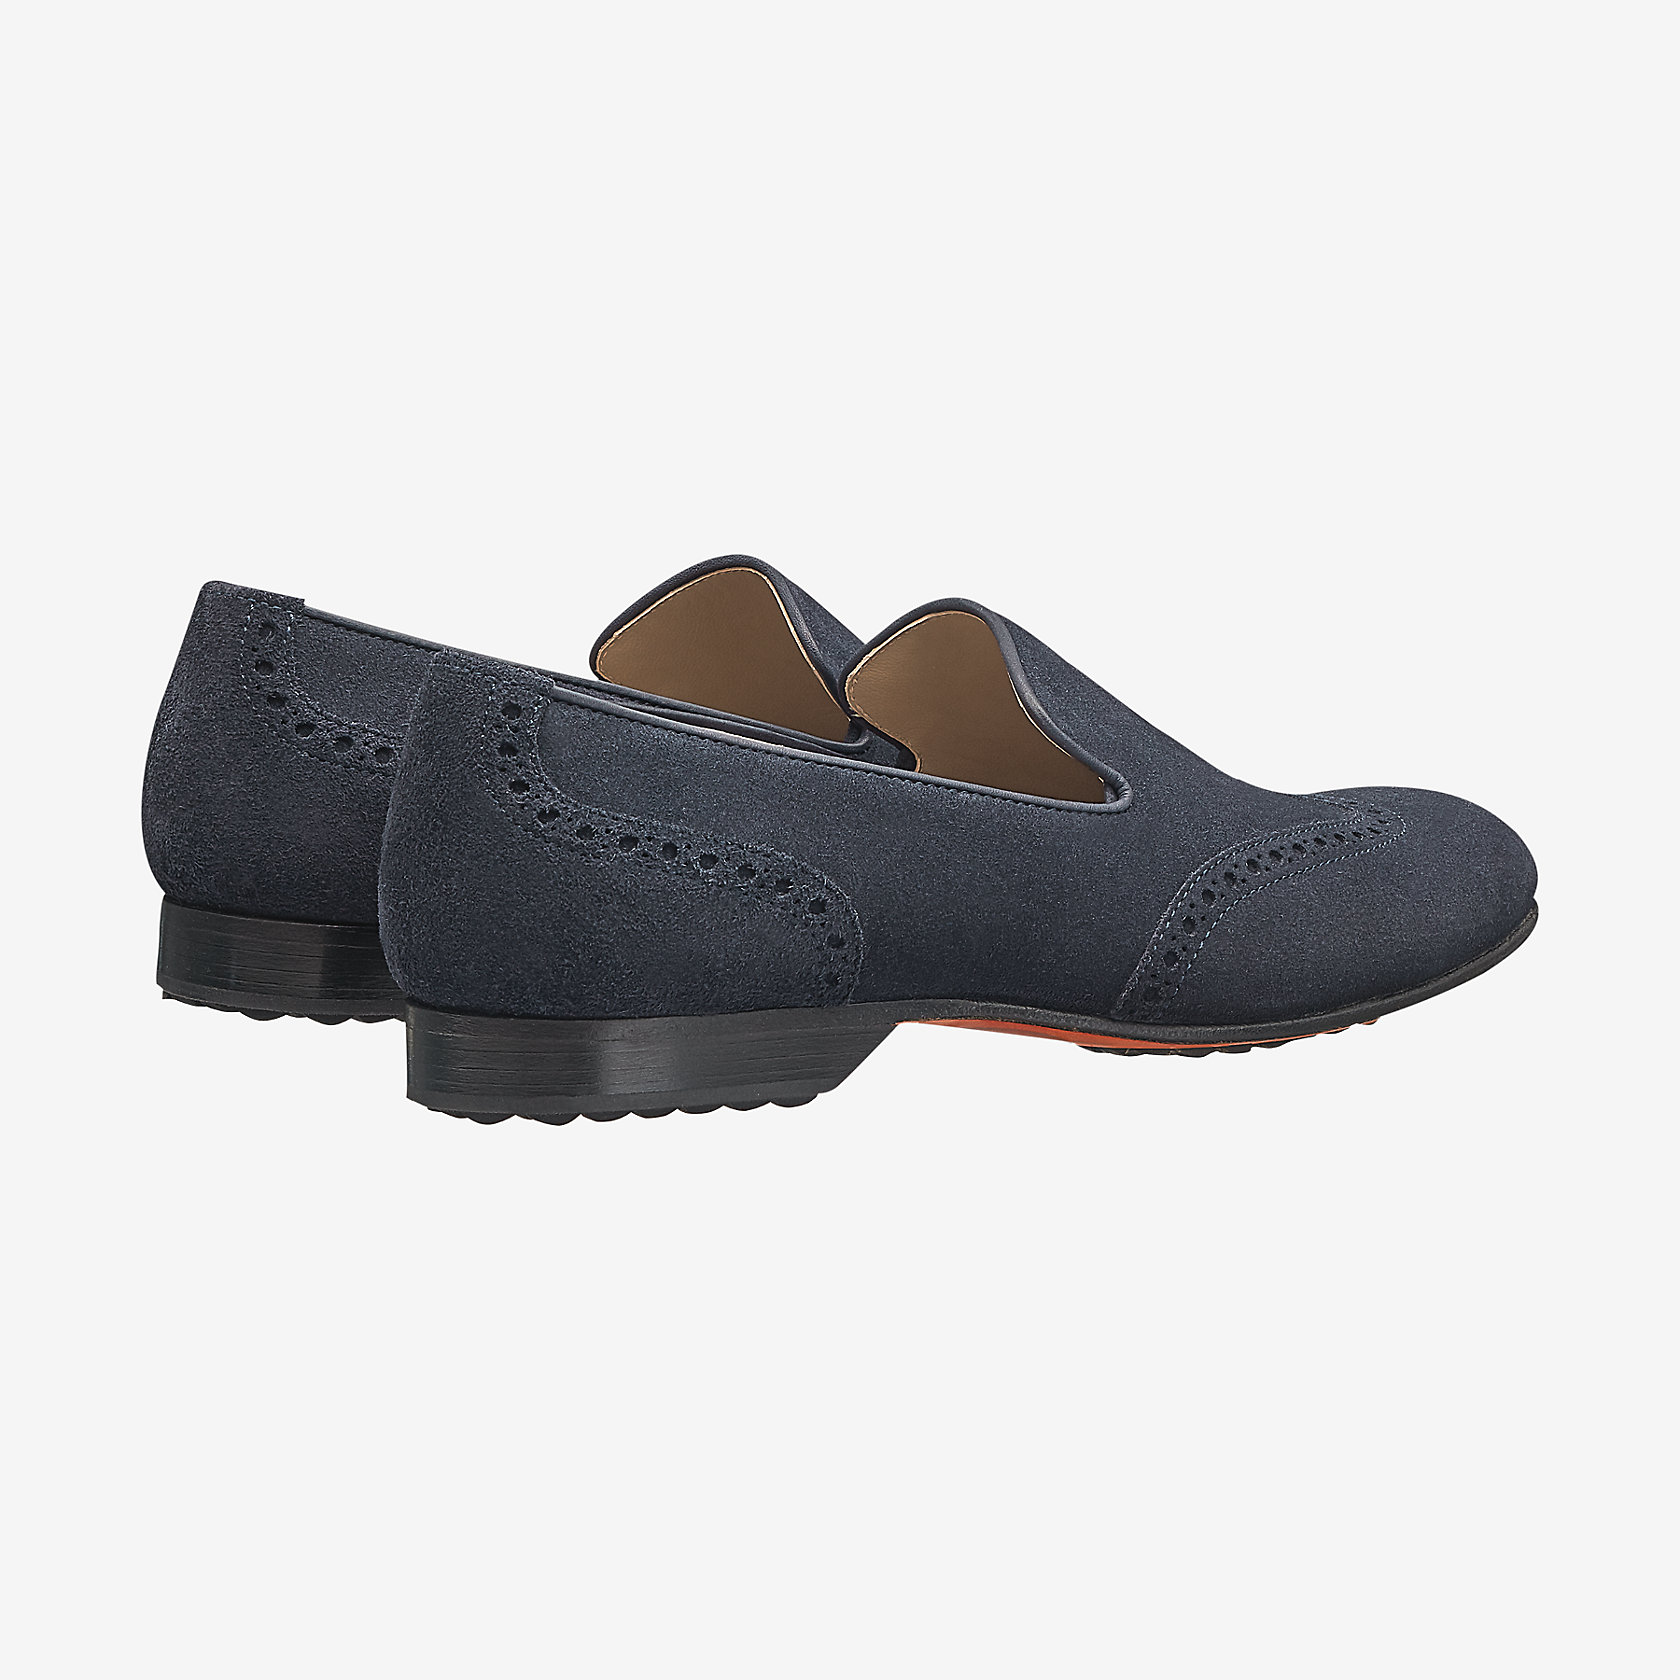 Palermo loafer herm s for Hermes palermo